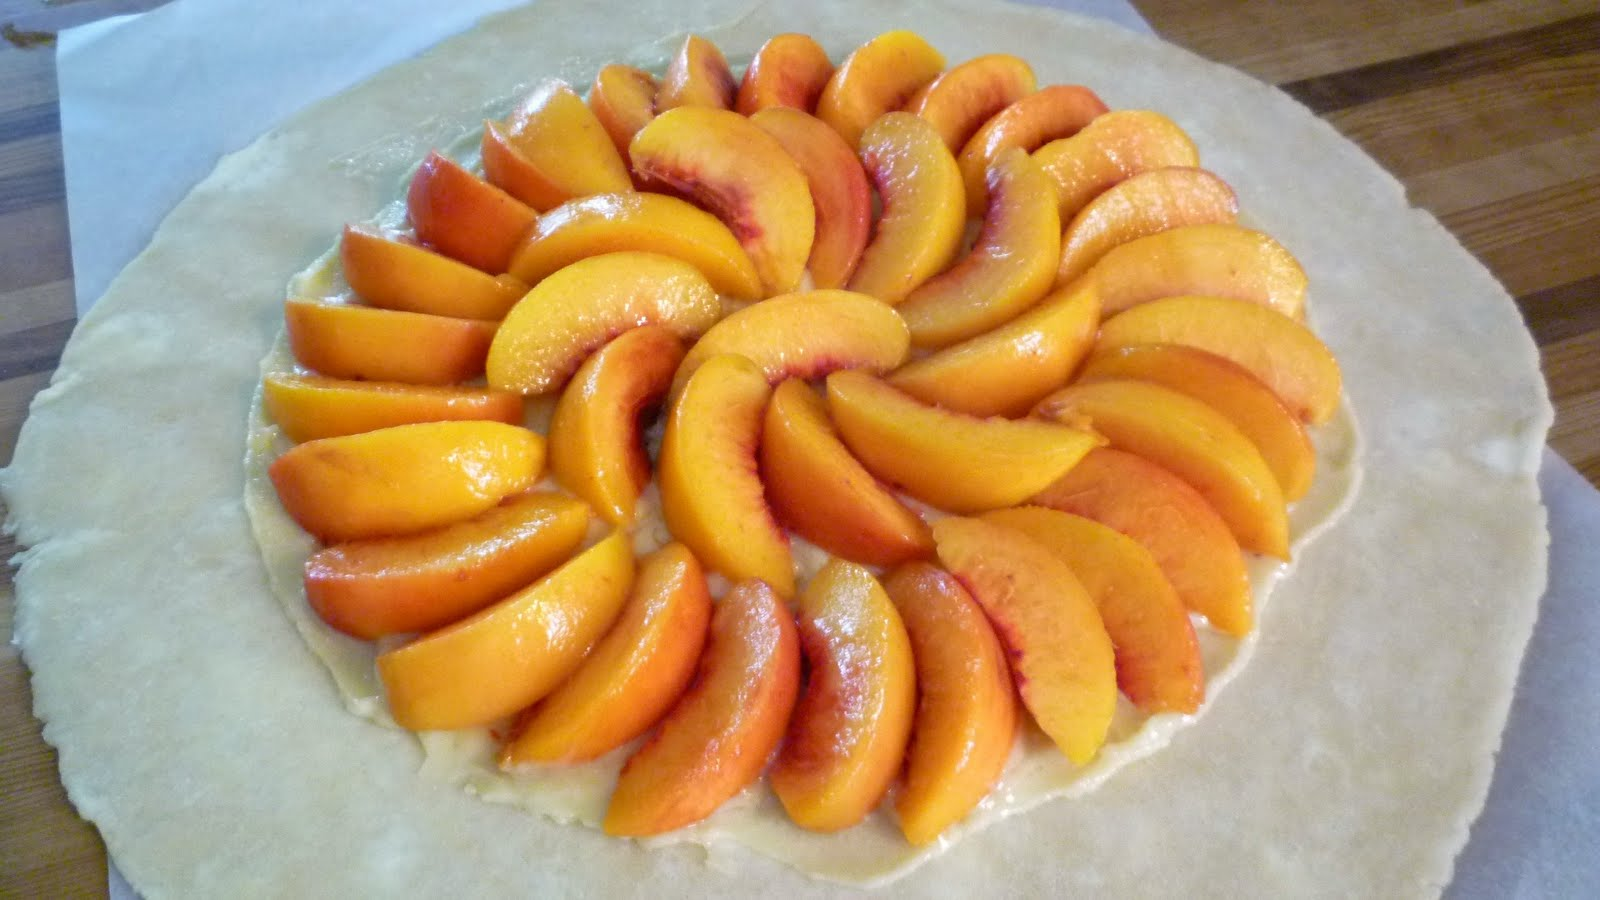 For Love of the Table: Peach, Raspberry & Almond Galette